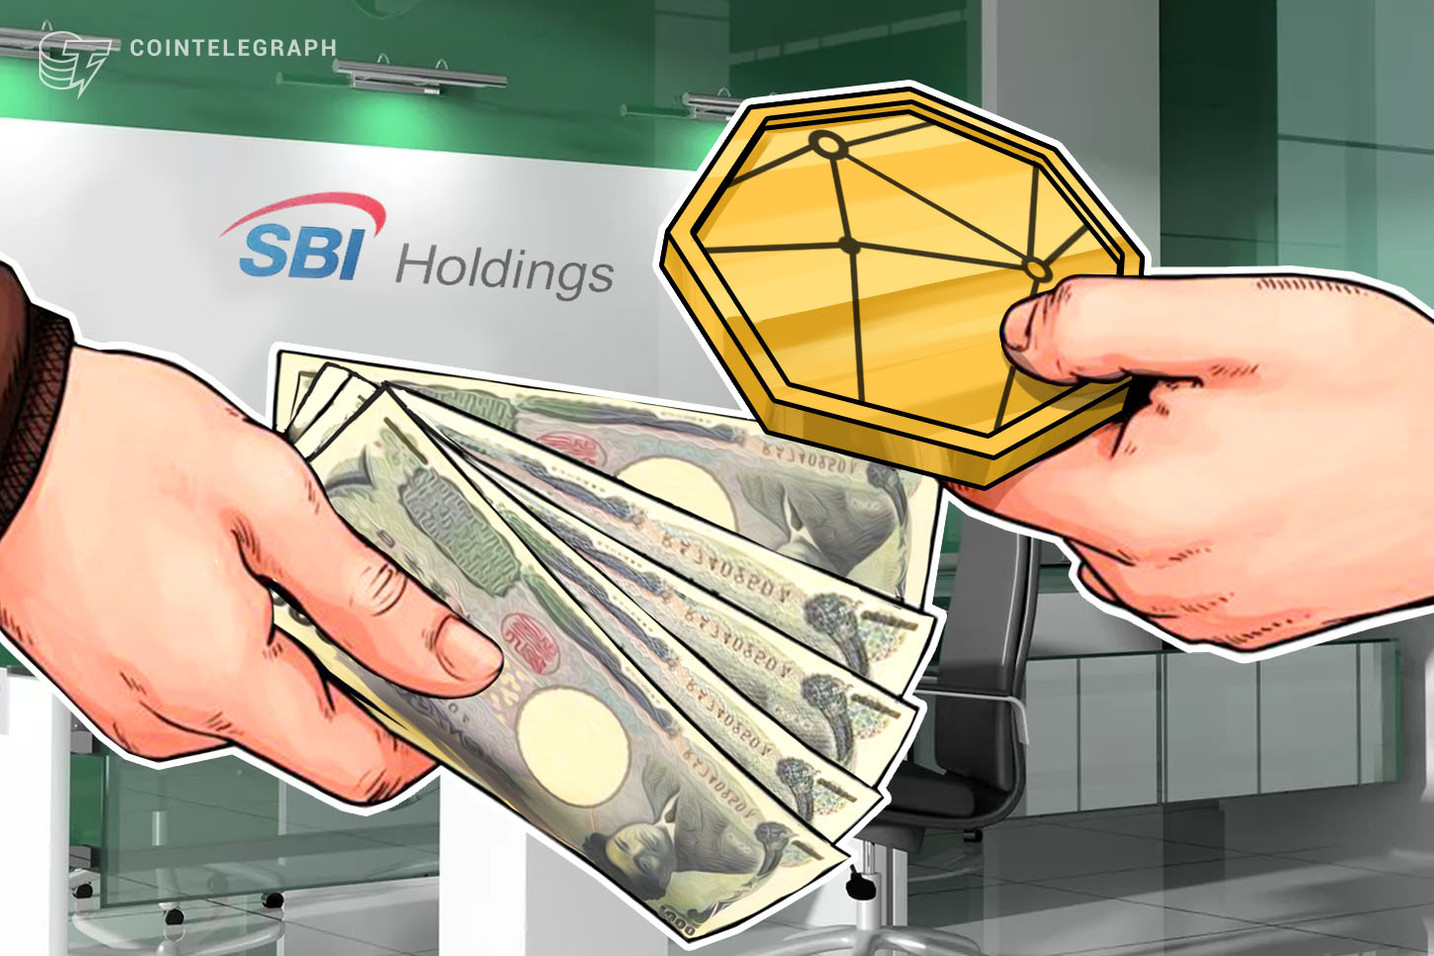 Japan Finance Giant SBI Holdings To Launch Crypto Exchange In Summer 2018